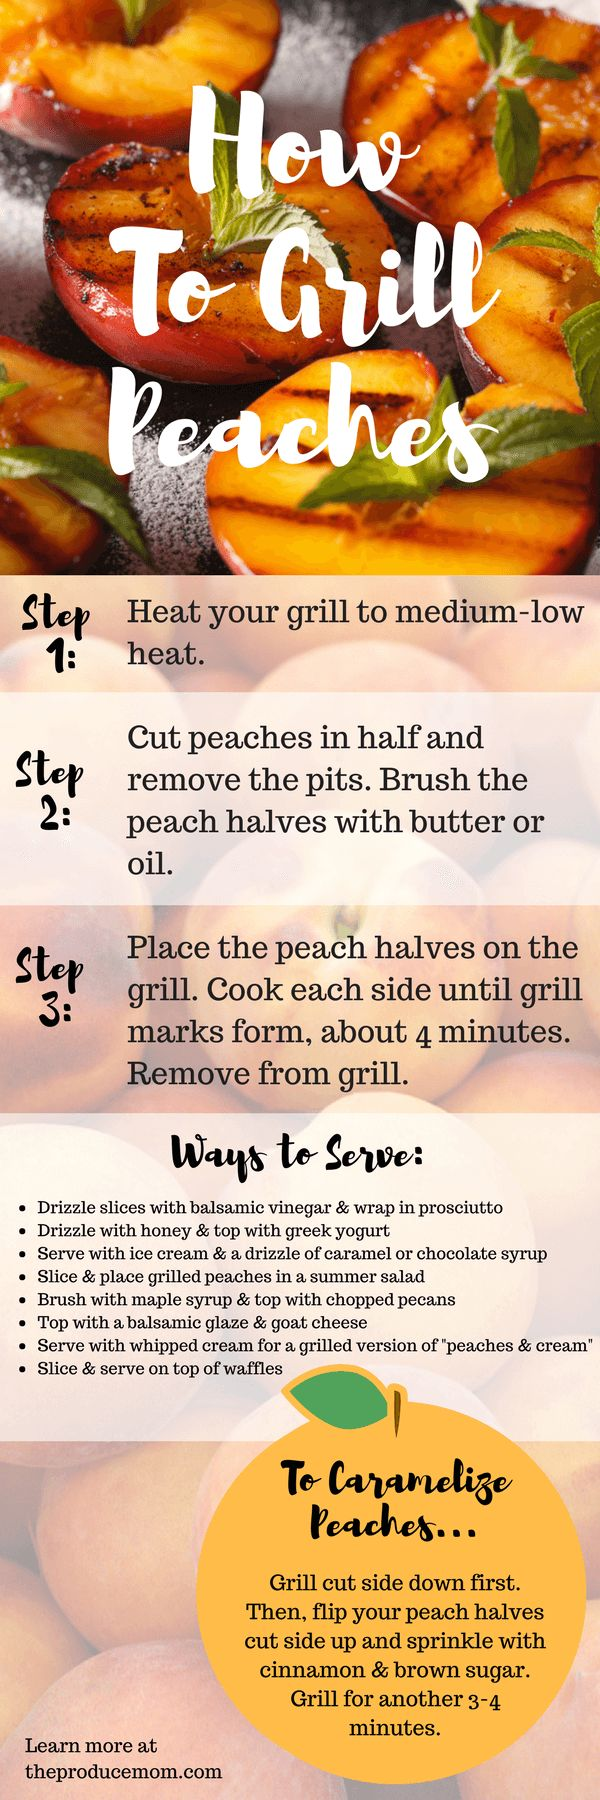 Grilled peaches infographic